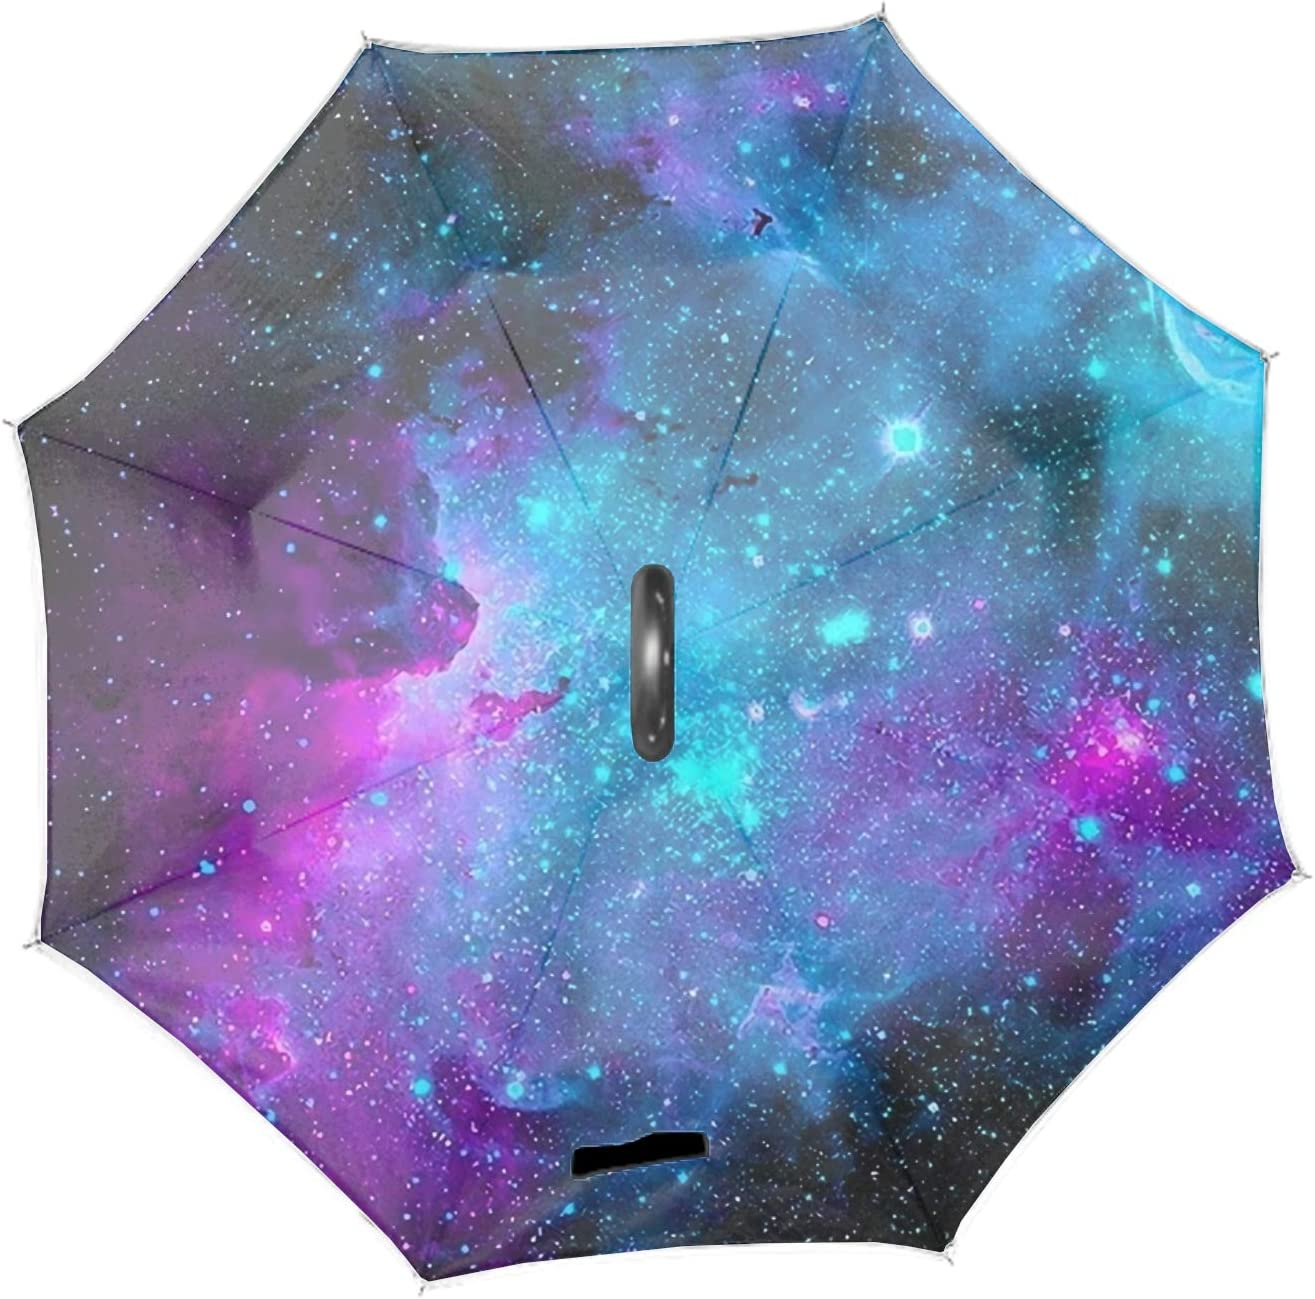 Beautiful Galaxy Space Double Layer Inverted Umbrella Carrying Bag for Traveling Upside Down Inside Out Reverse Umbrella,C-Shape Handle /& Self-Stand to Spare Hands